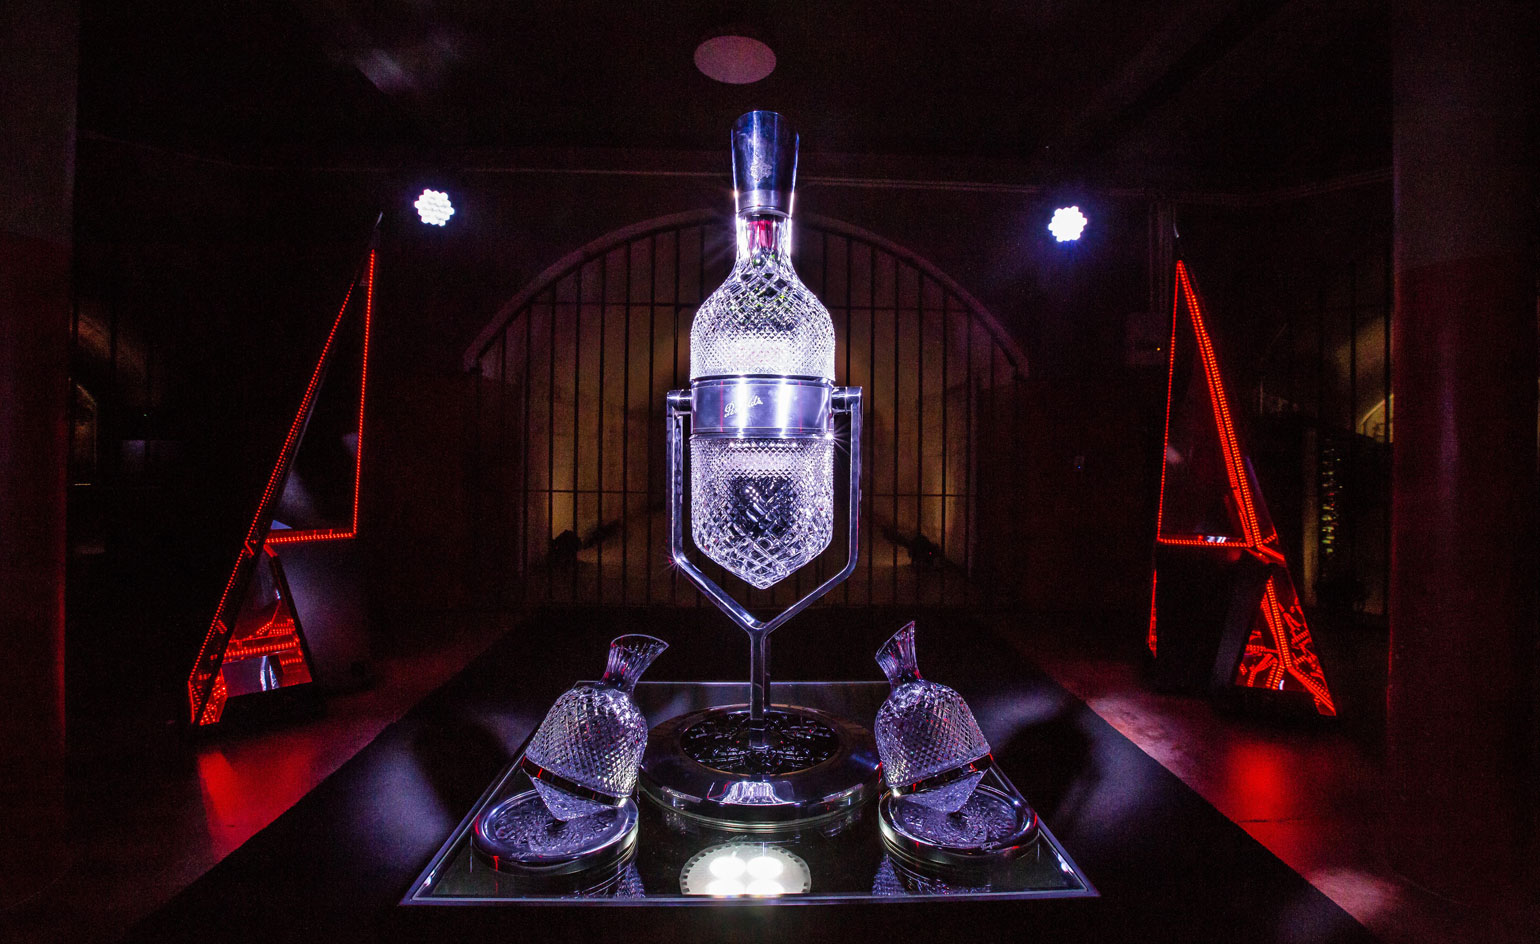 penfolds and saint louis collaborate on a serving ritual